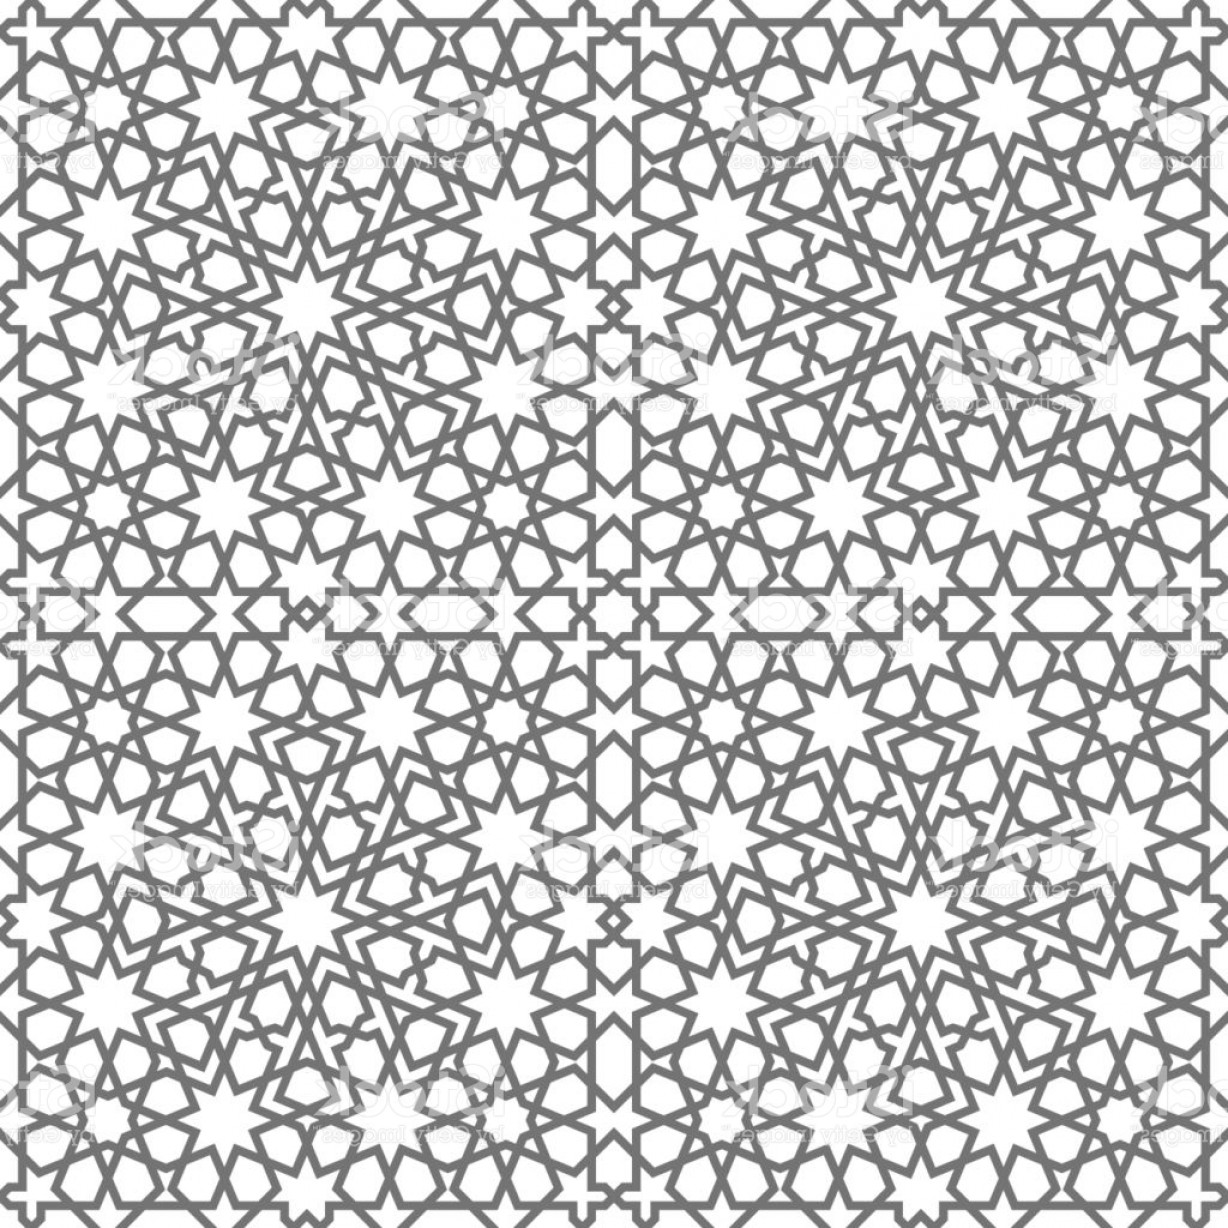 1228x1228 Islamic Seamless Vector Pattern Geometric Ornaments Based On